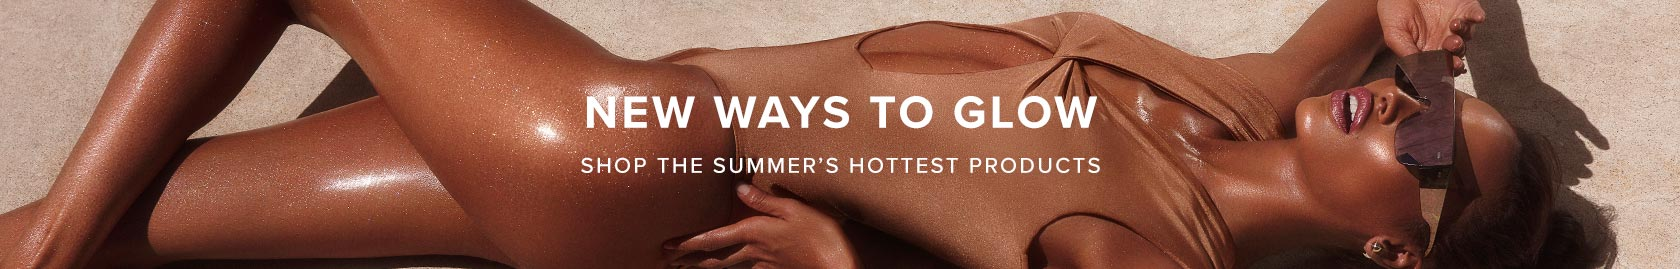 New Ways To Glow - Shop Summer's Hottest Products